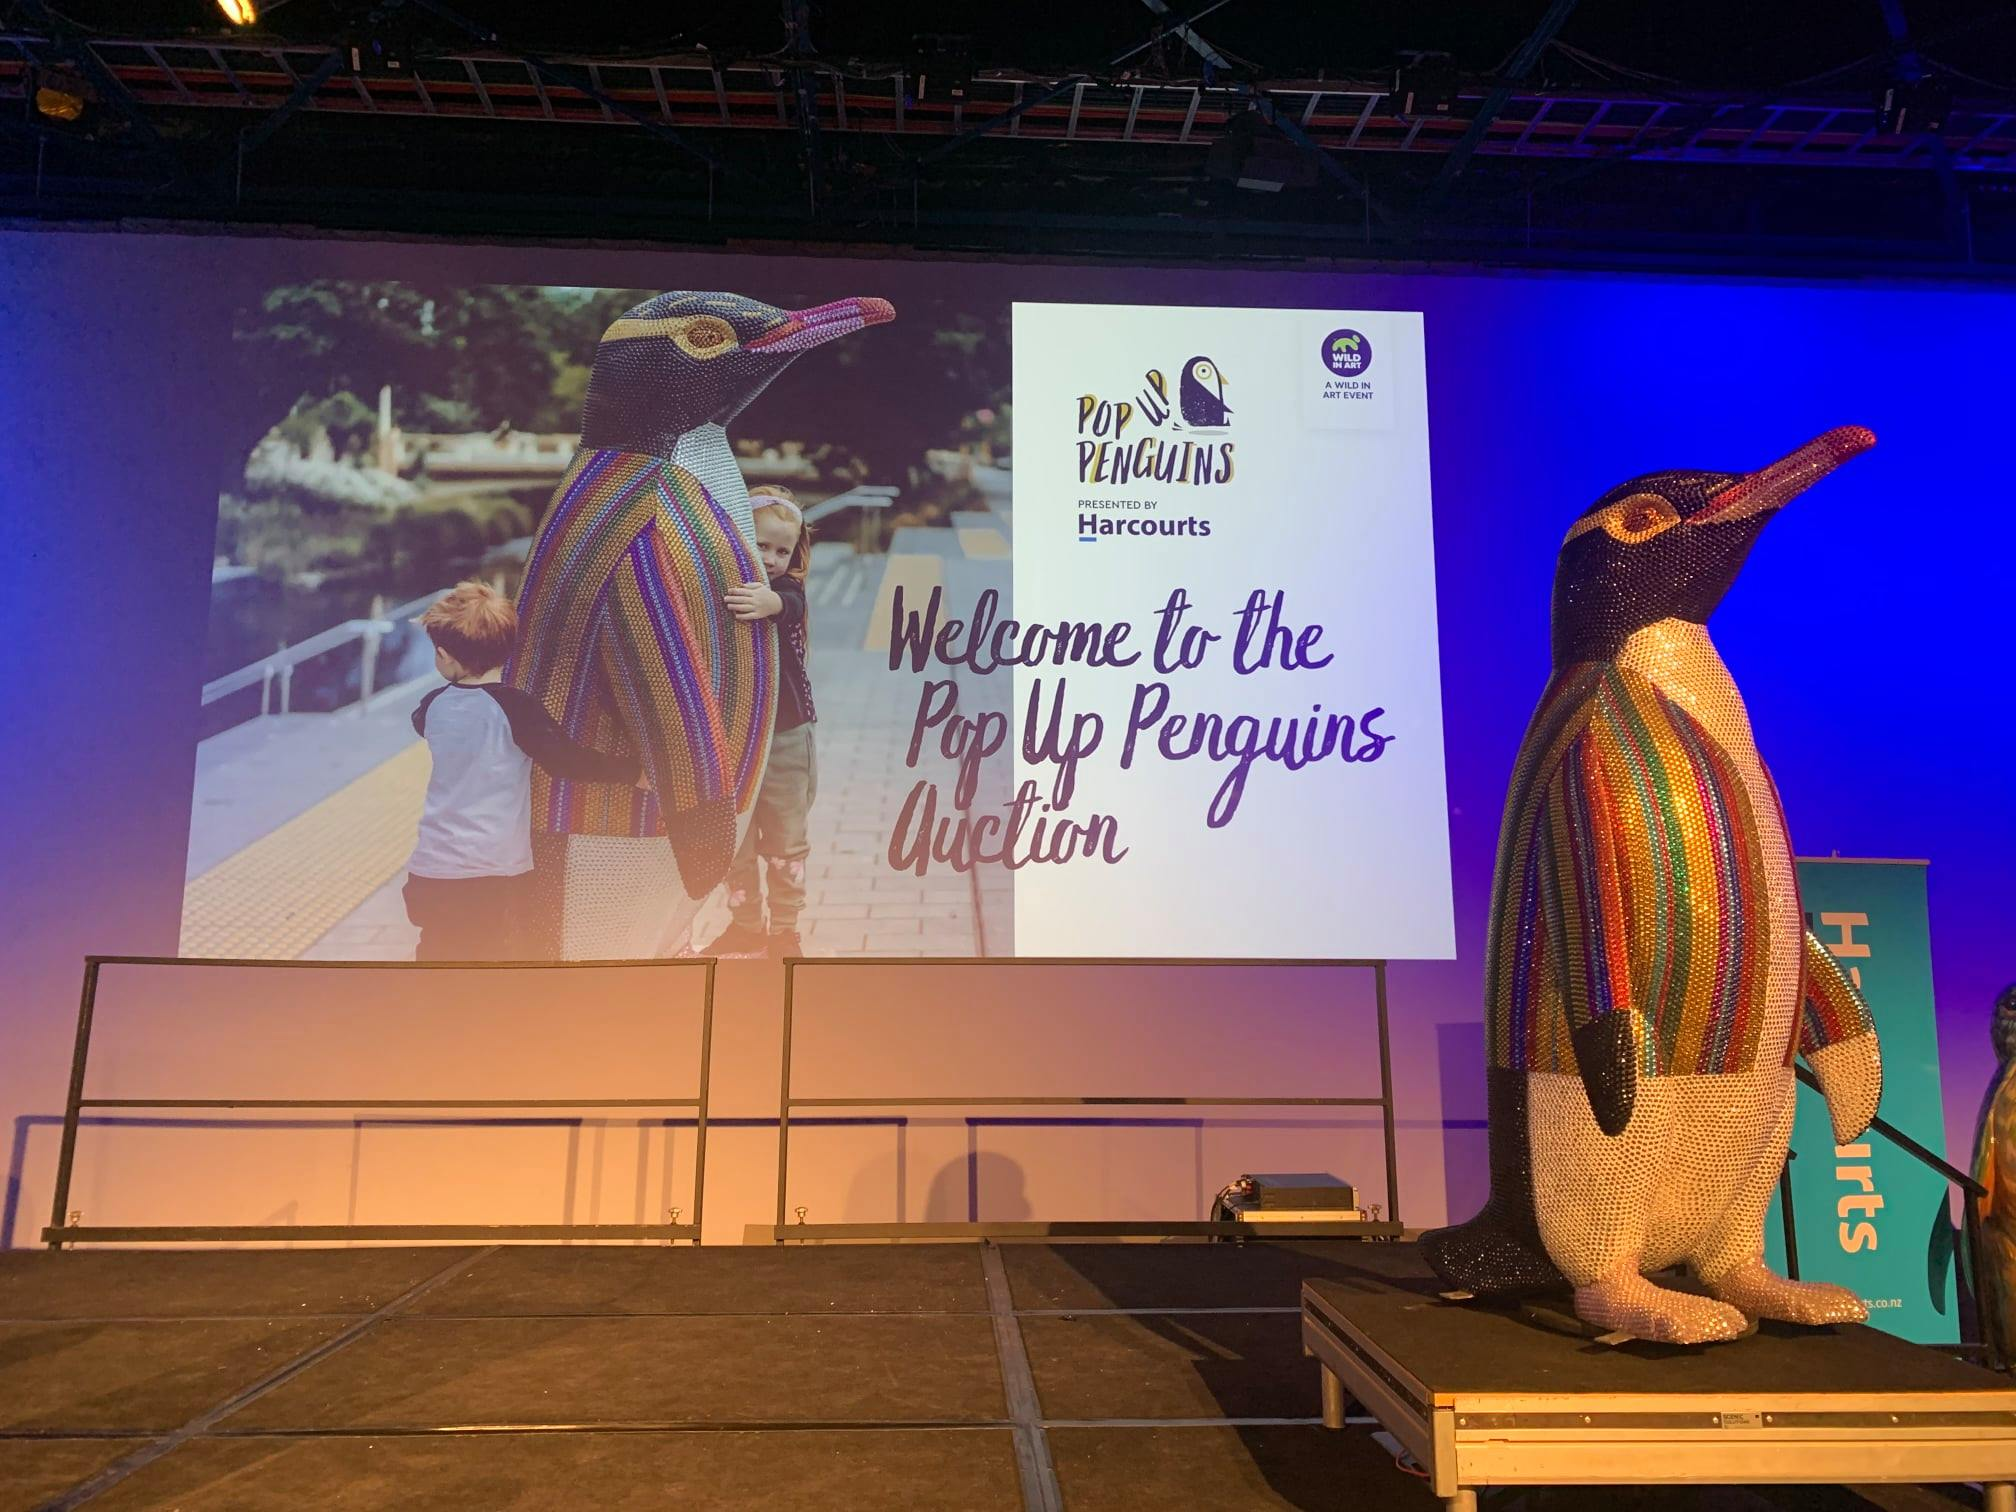 Harcourts helps raise over a cool million from Pop-Up Penguins